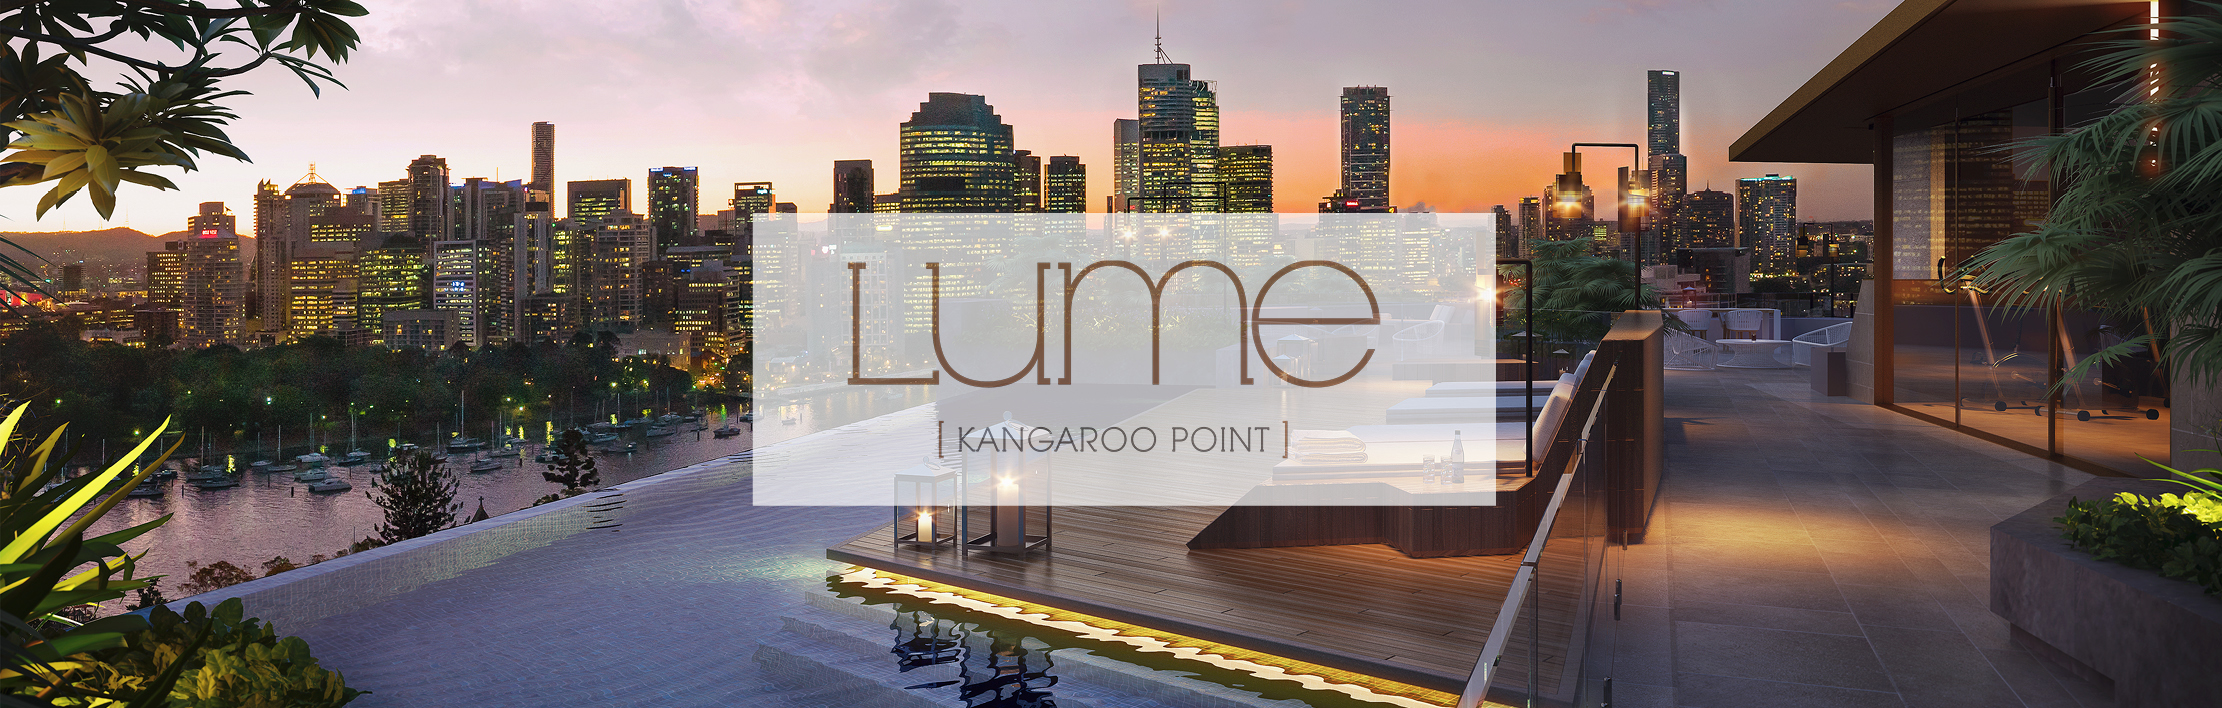 LUME, Kangaroo Point